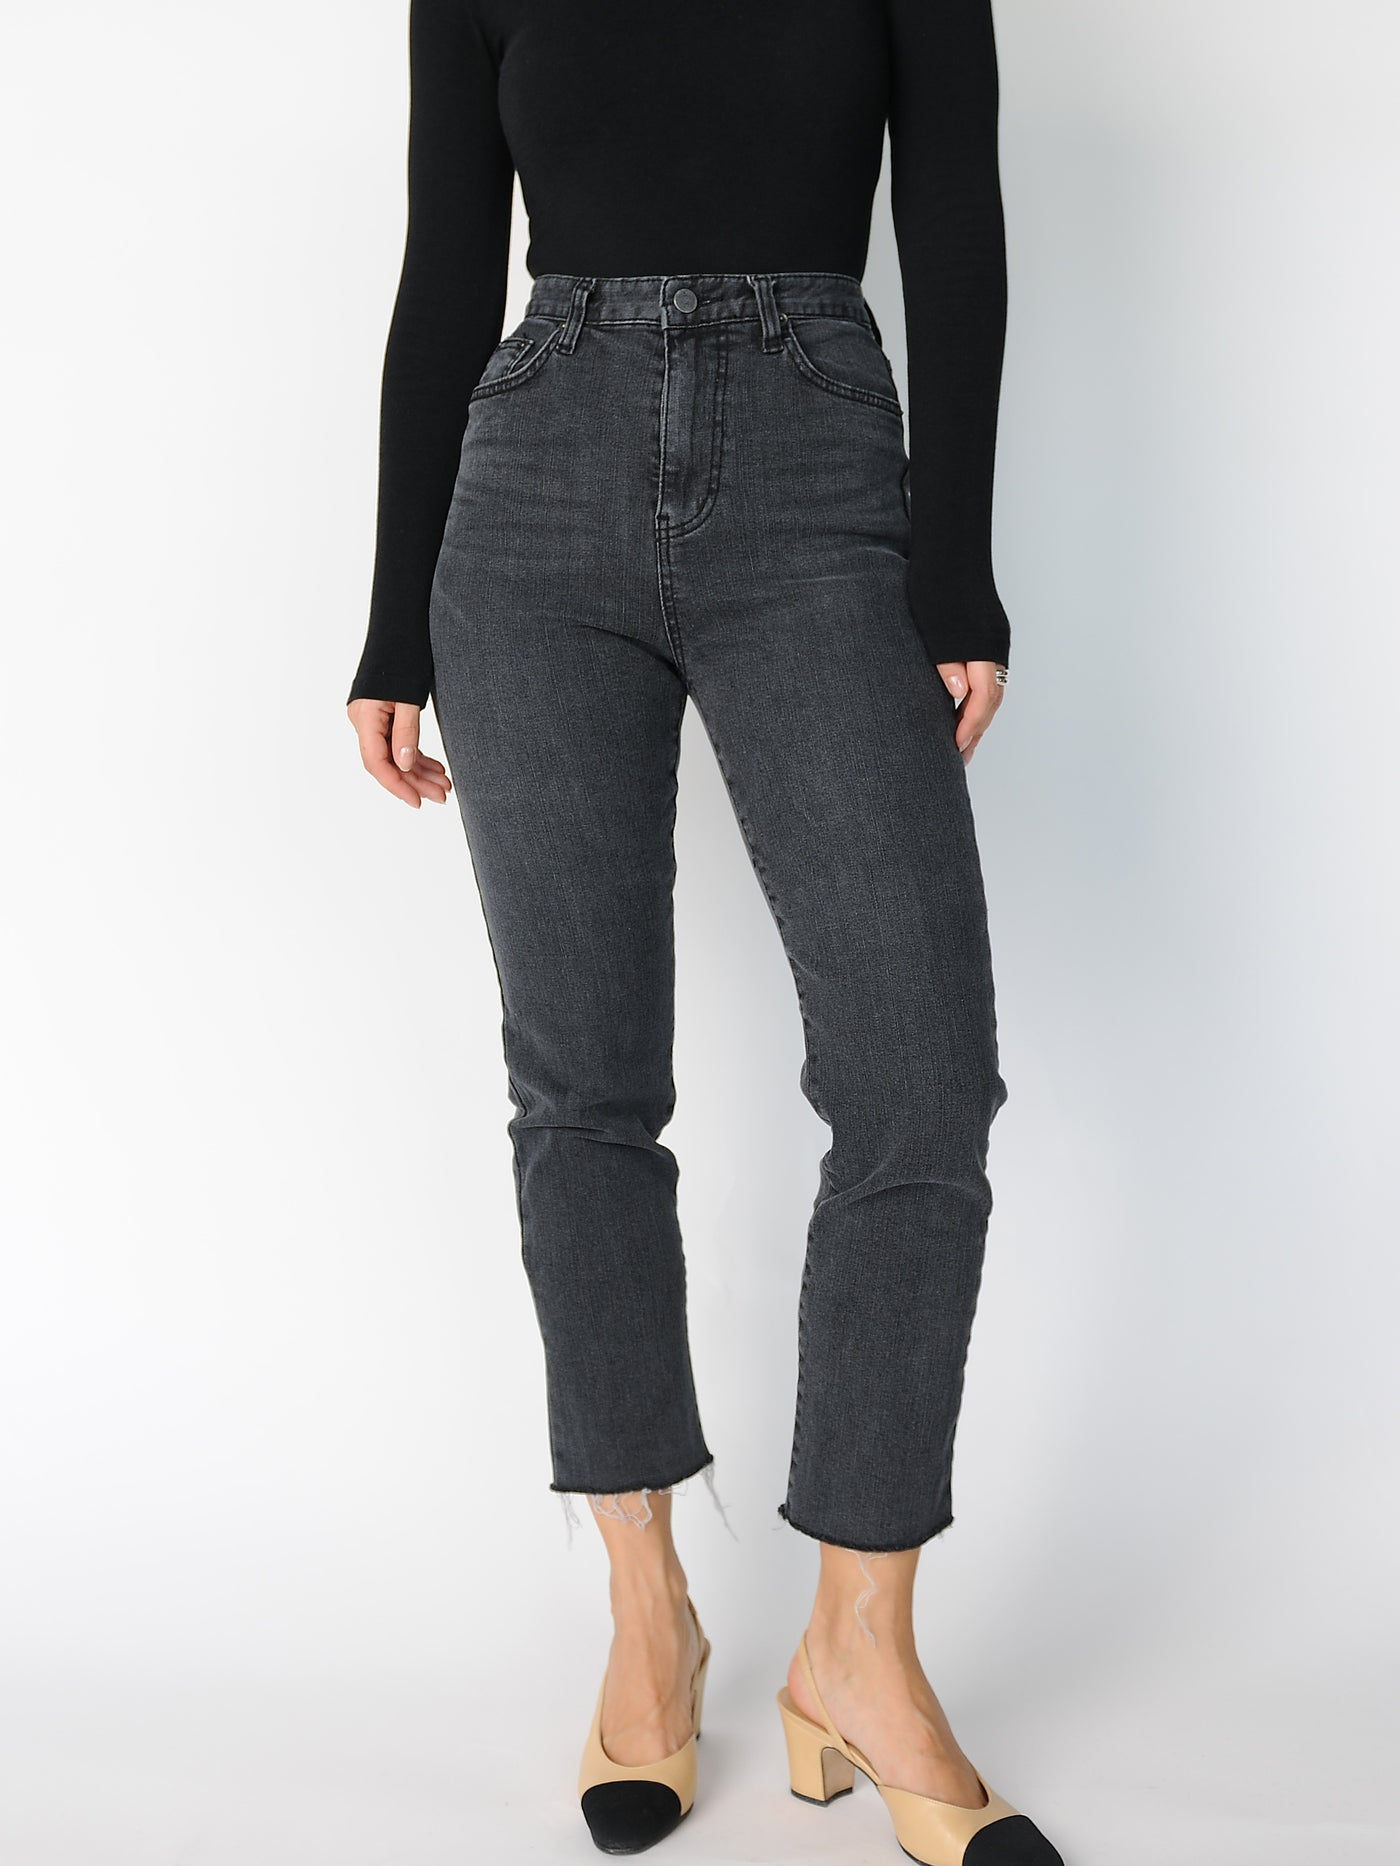 Grey High Waisted Jeans - Marble Hive